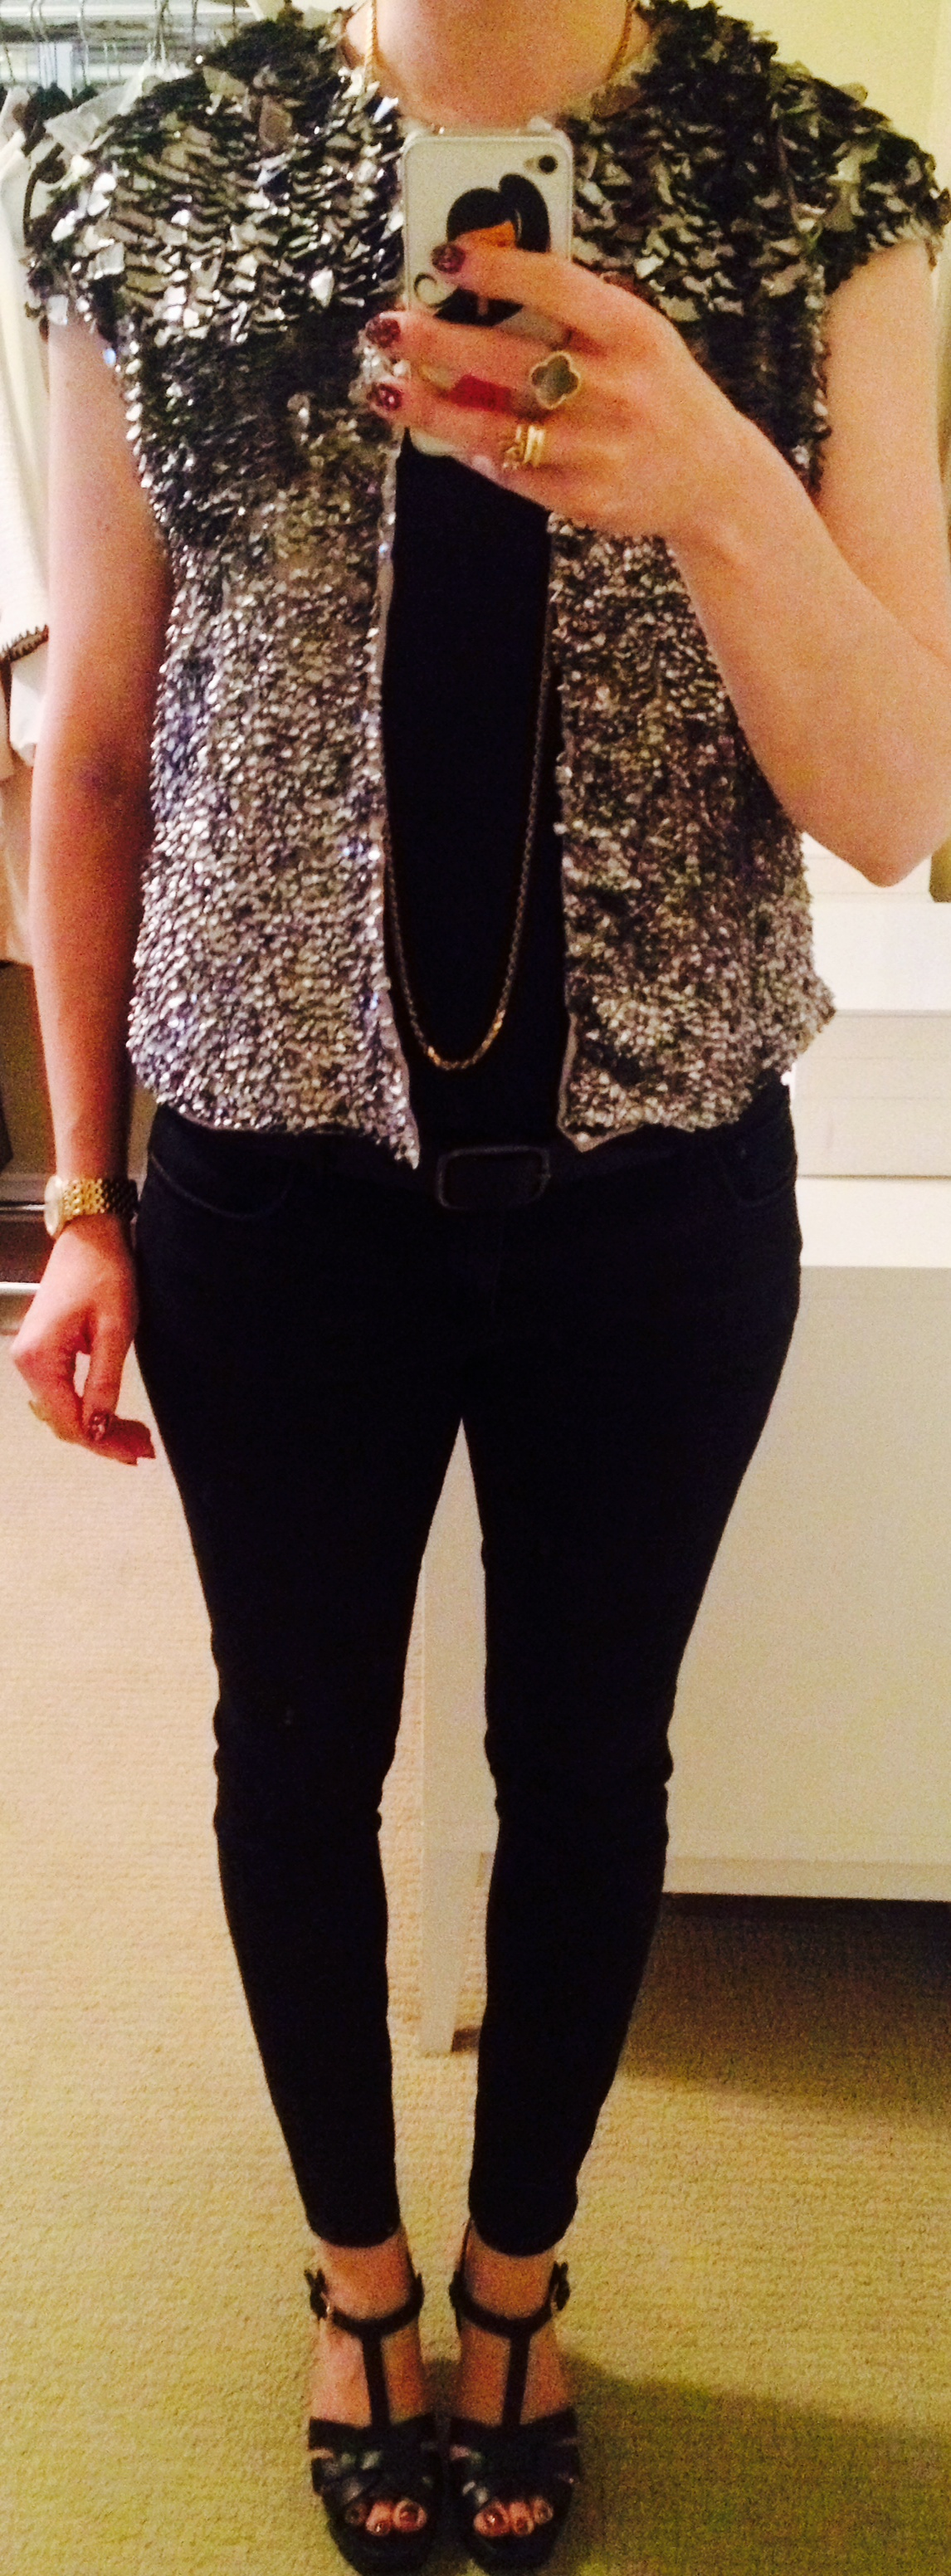 June 21, Saturday night out in a simple tee, skinny jeans and sequin bolero jacket by Zara